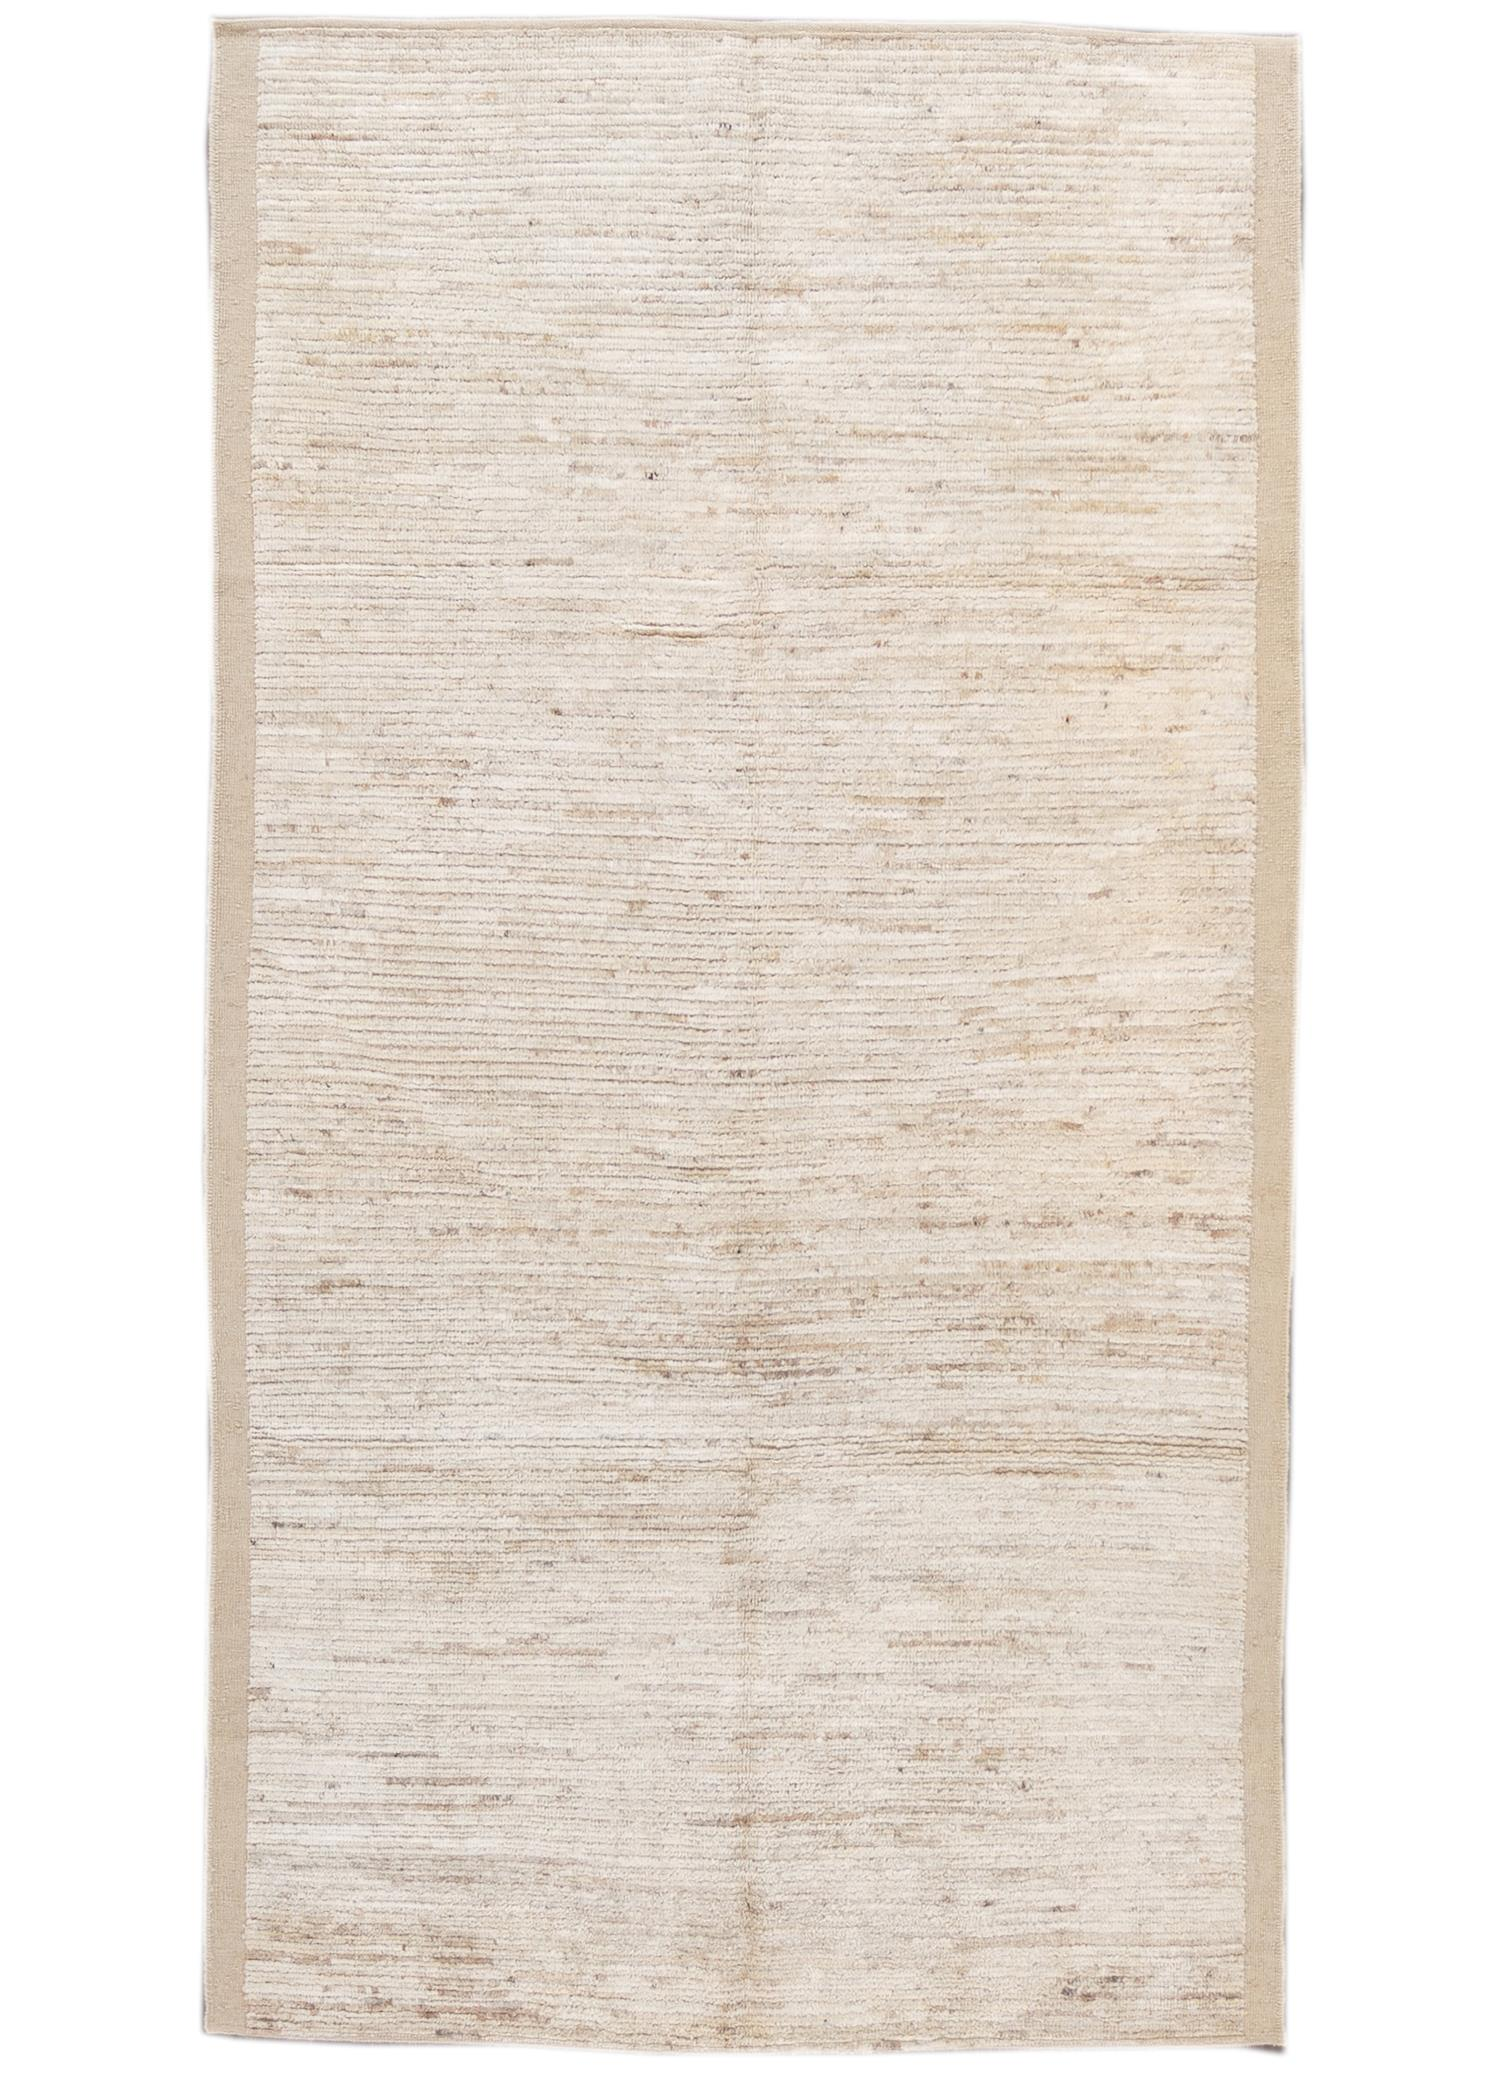 21st Century Modern Moroccan-Style Rug, 5' x 10'